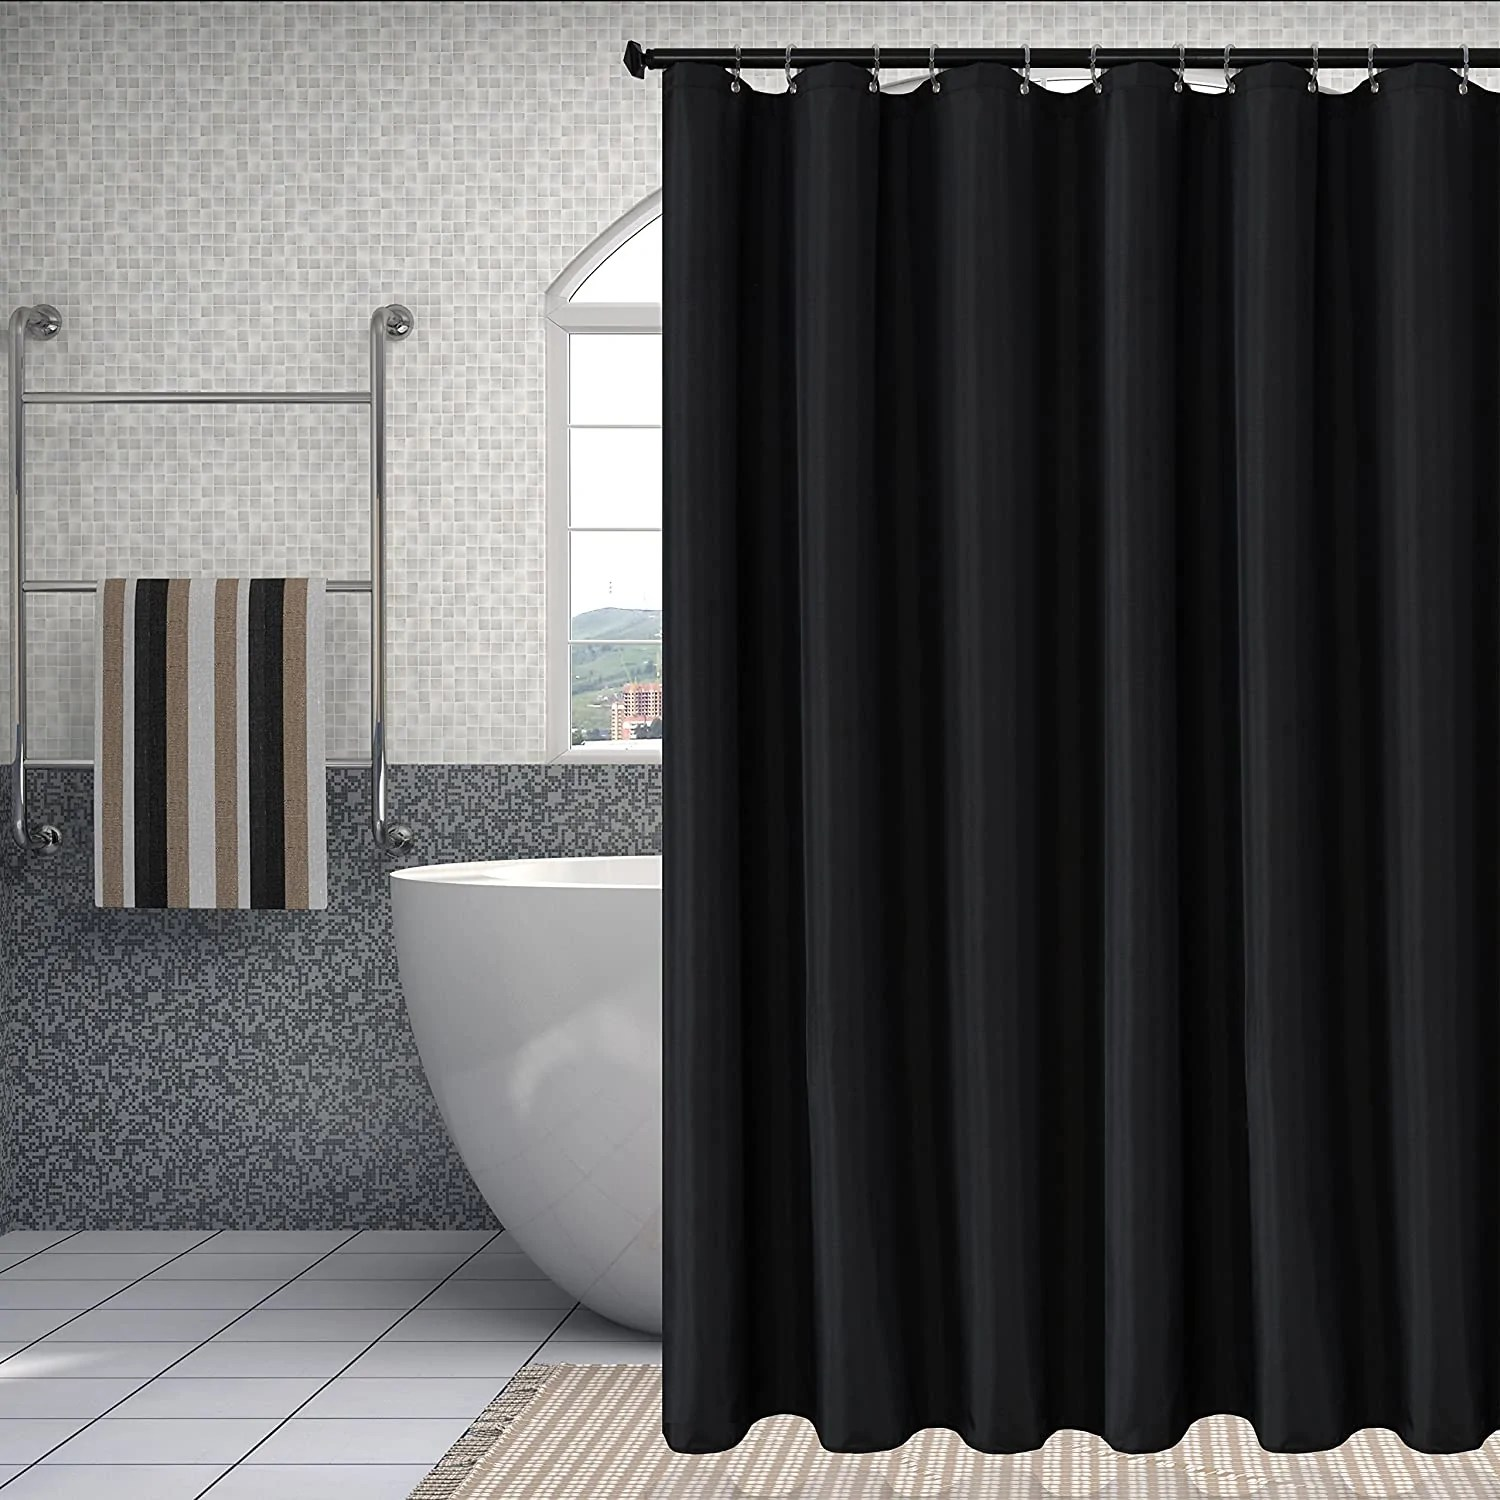 harfirbe fabric shower curtain liners water resistant bathroom curtain liners black 72 by 72 inches